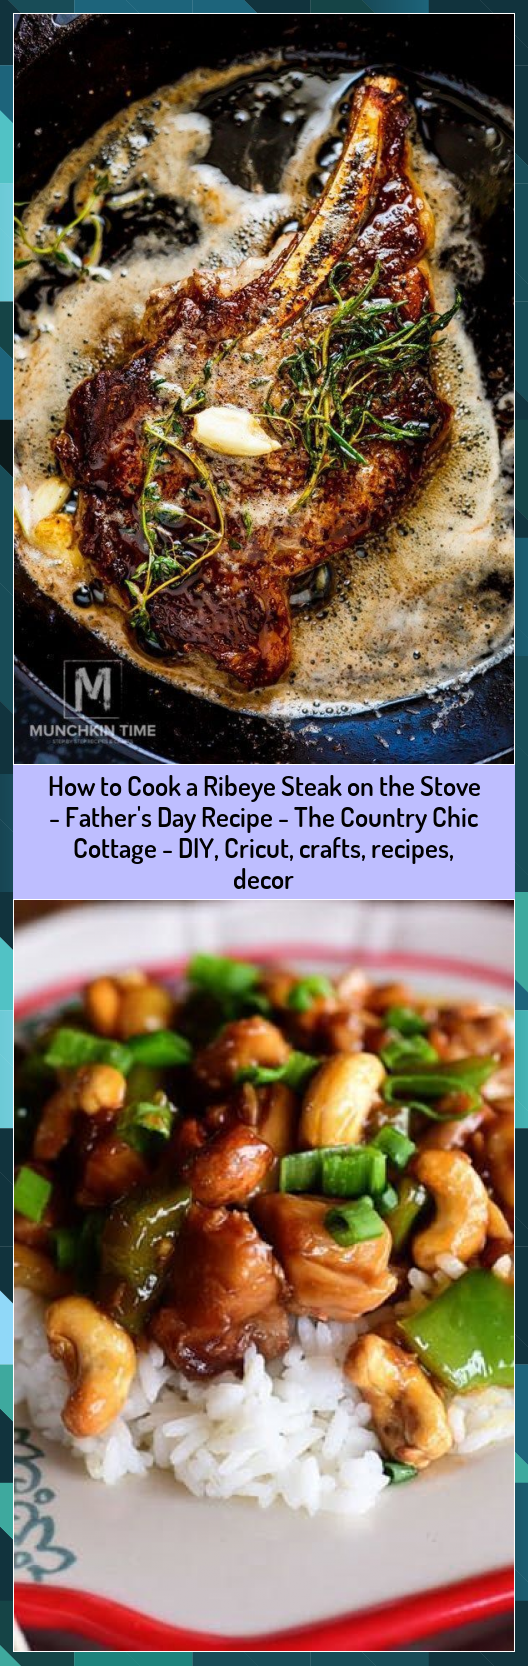 How to Cook a Ribeye Steak on the Stove - Father's Day Recipe - The Country Chic Cottage - DIY, Cricut, crafts, recipes, decor #Chic #Cook #Cottage #Country #Crafts #Cricut #Day #Decor #DIY #Fathers #Recipe #Recipes #Ribeye #Steak #Stove